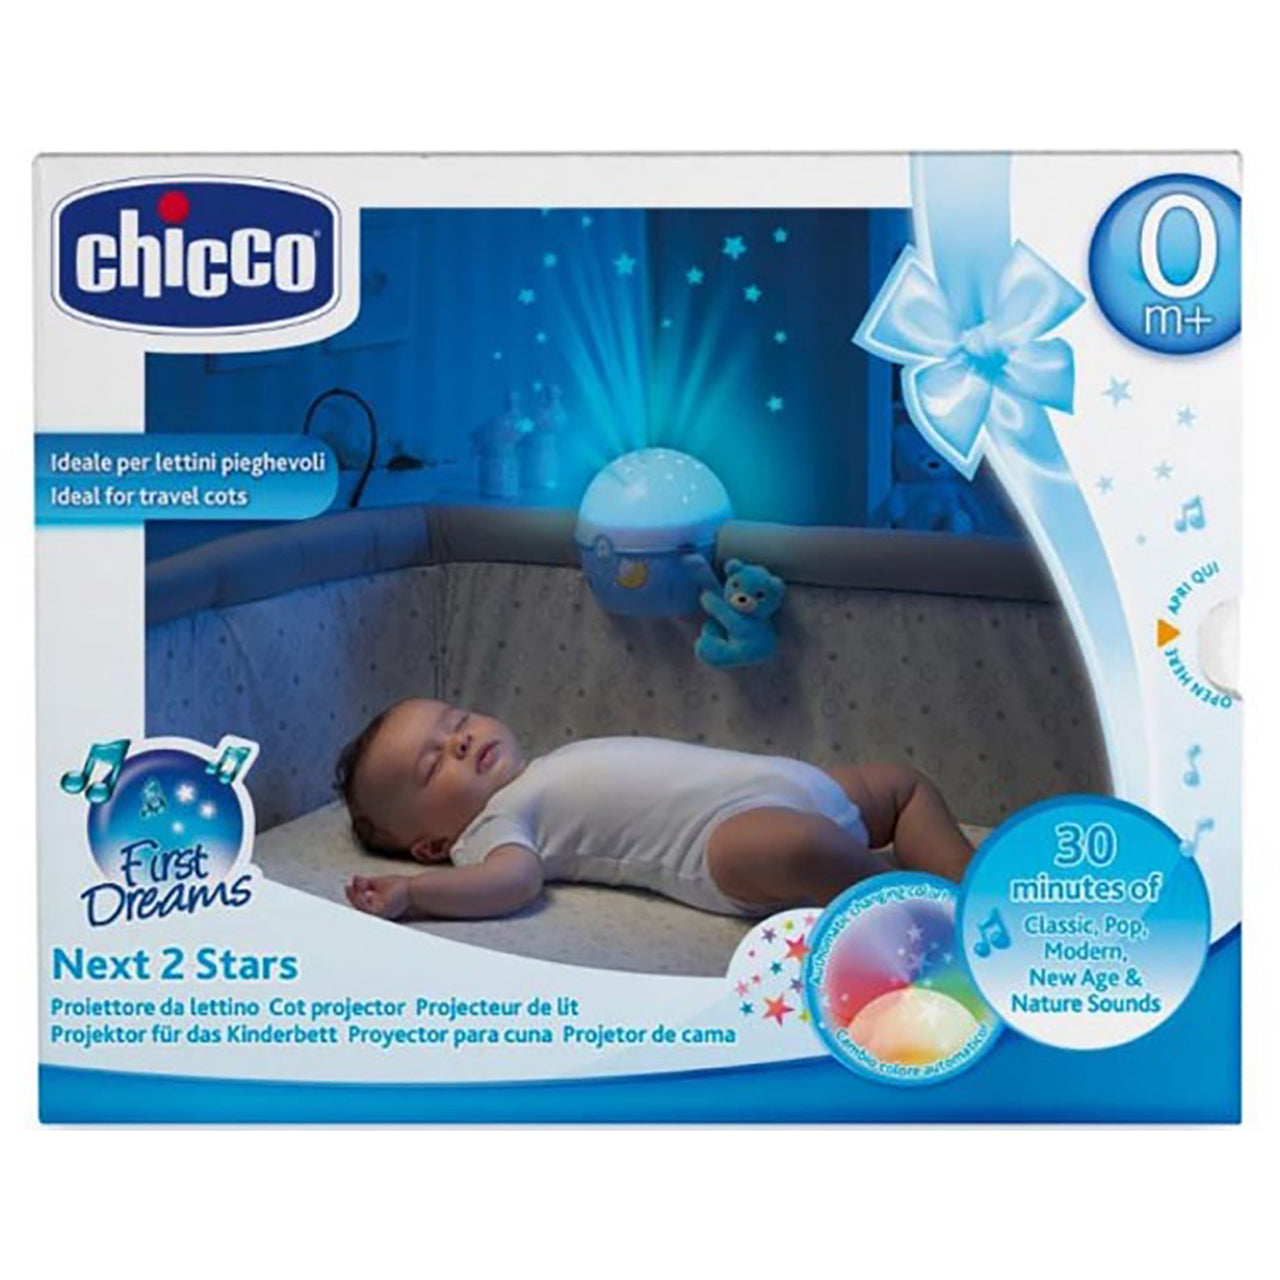 Chicco Next 2 Stars Cot Projector - Happy Baby